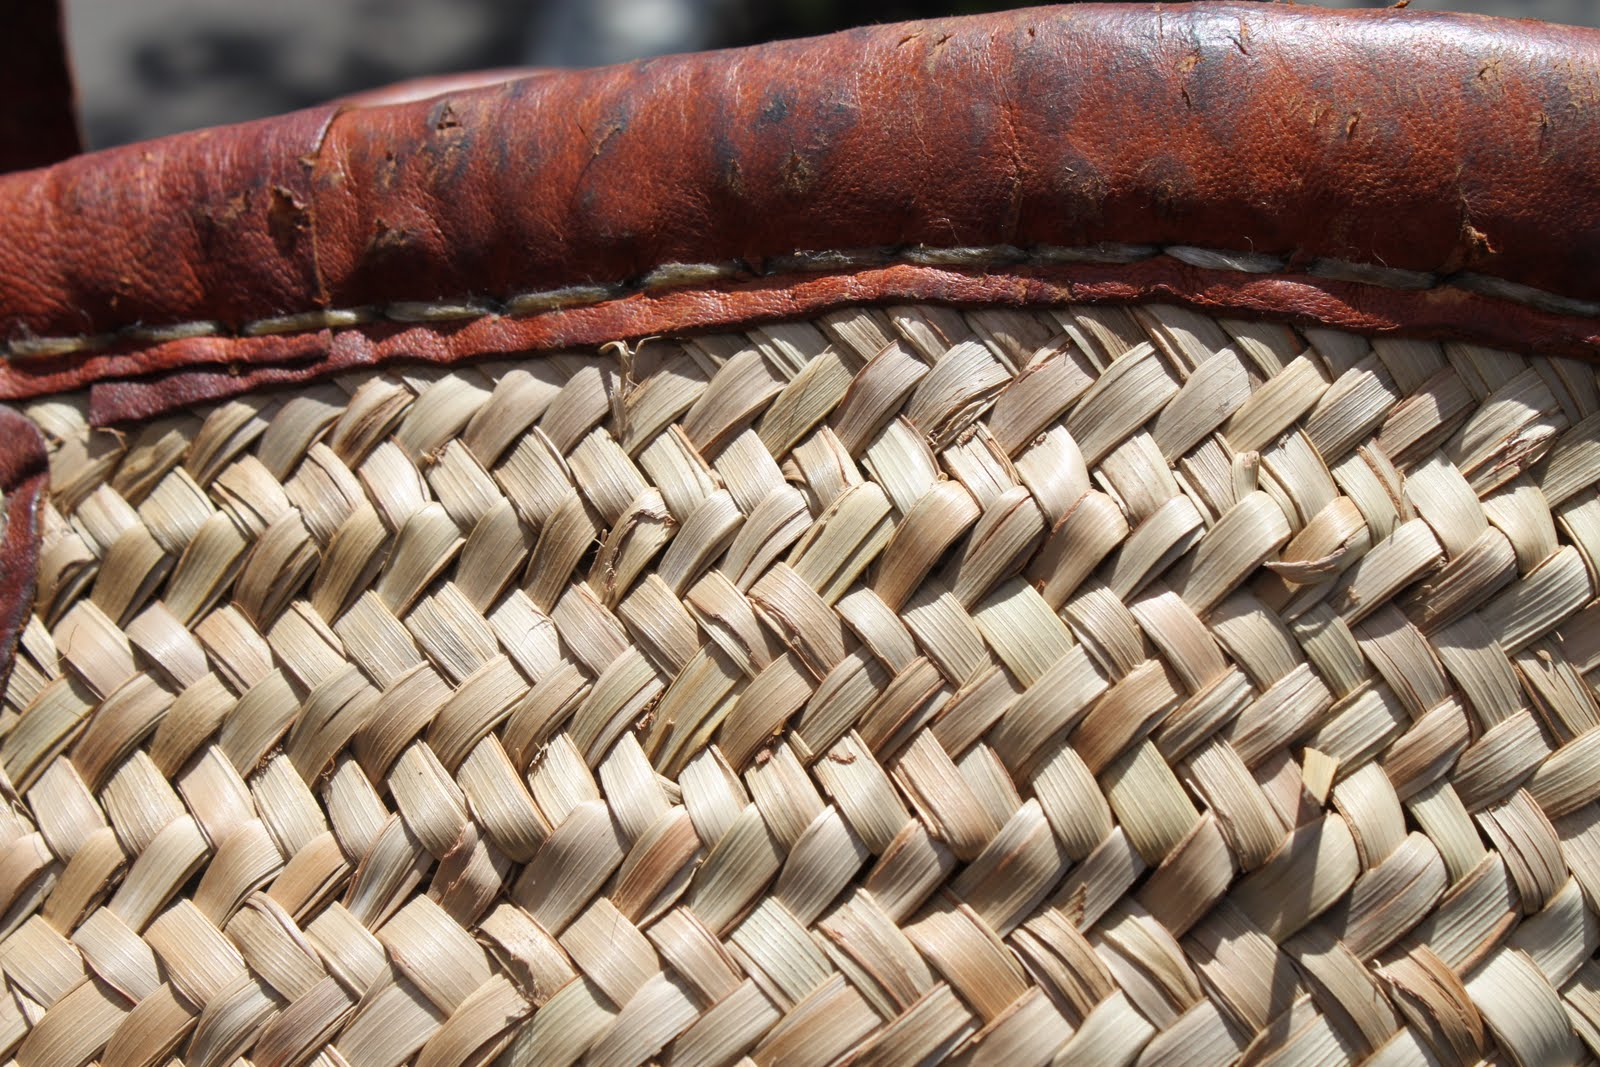 Moroccan Leather Pouf Design Sit Down Pinterest Leather French Basketeer Fine Morocco Leather